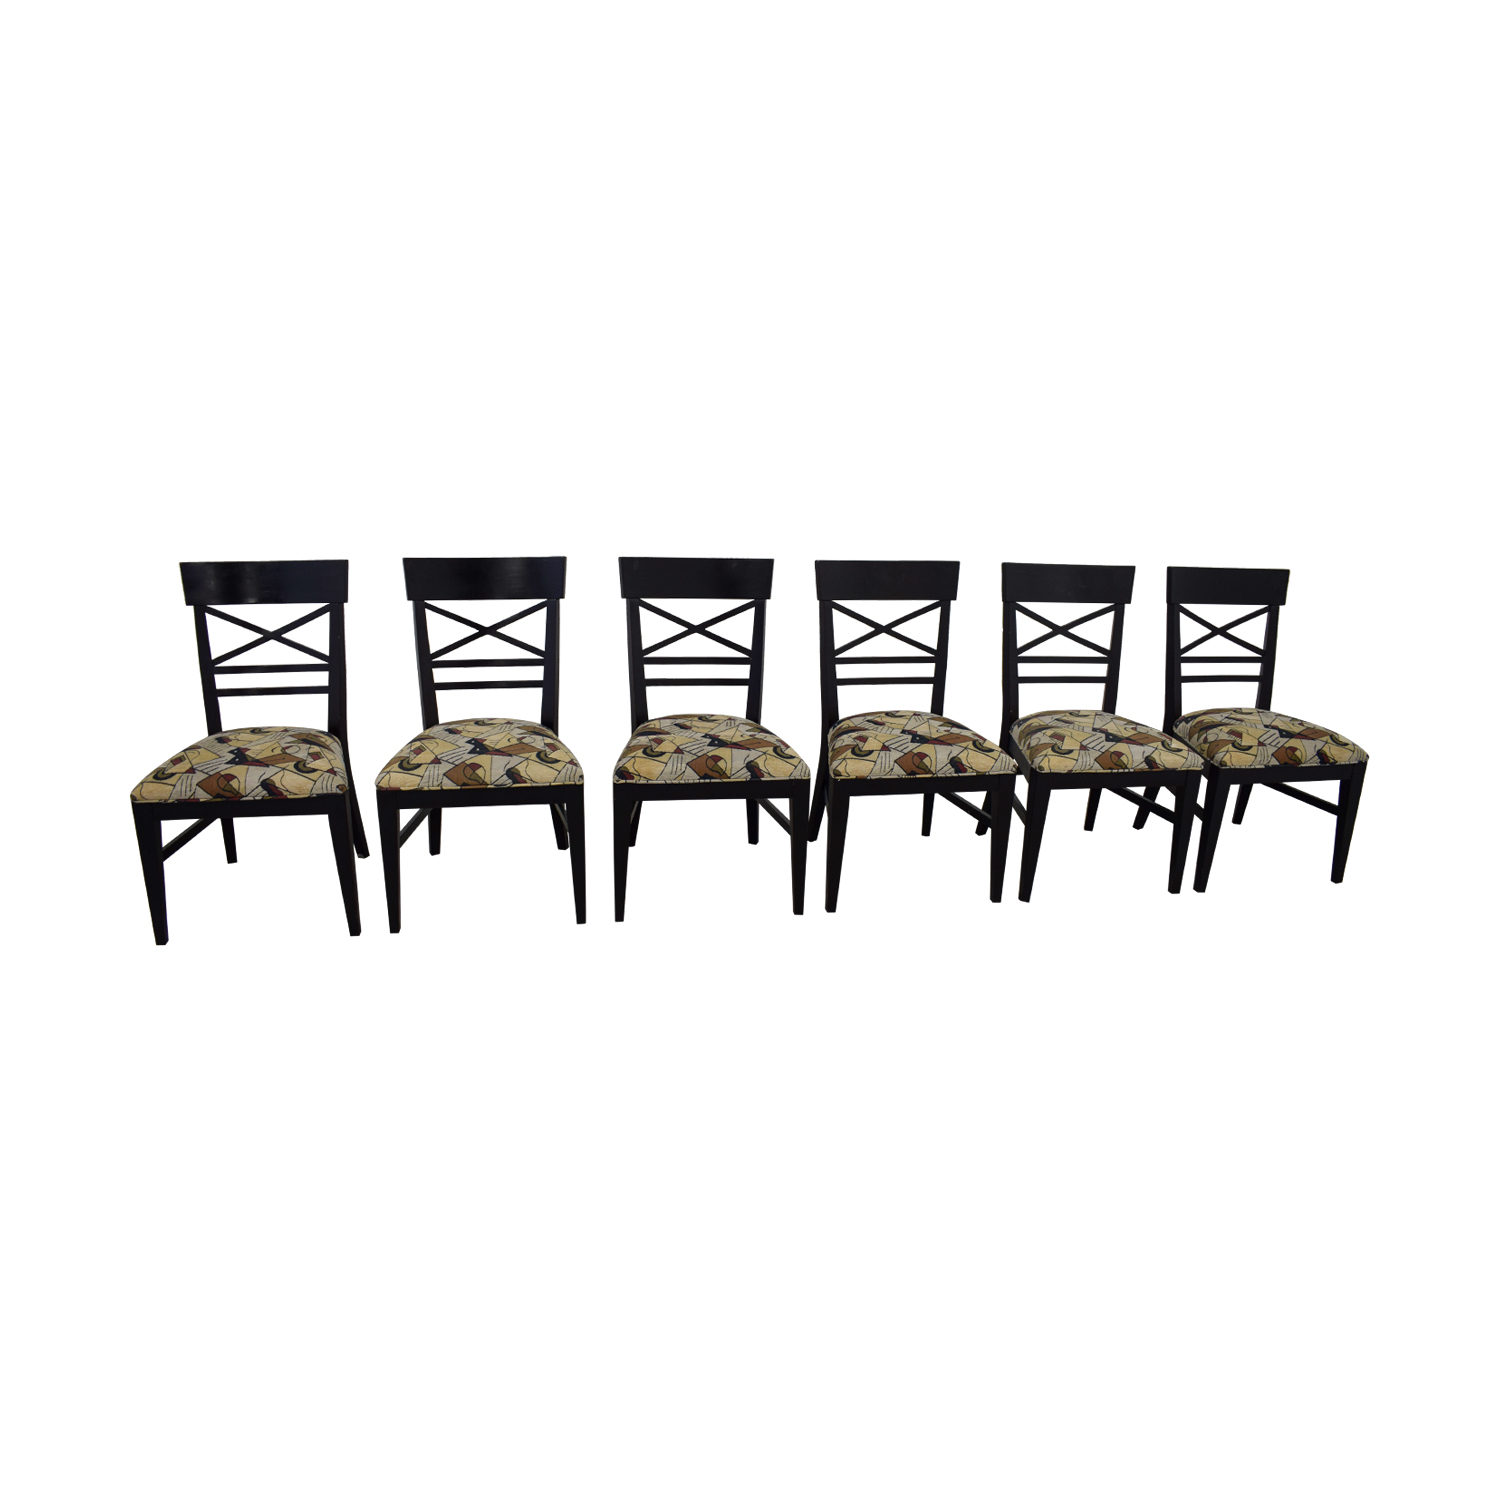 Ethan Allan Ethan Allan Geometric Upholstered Dining Chairs discount